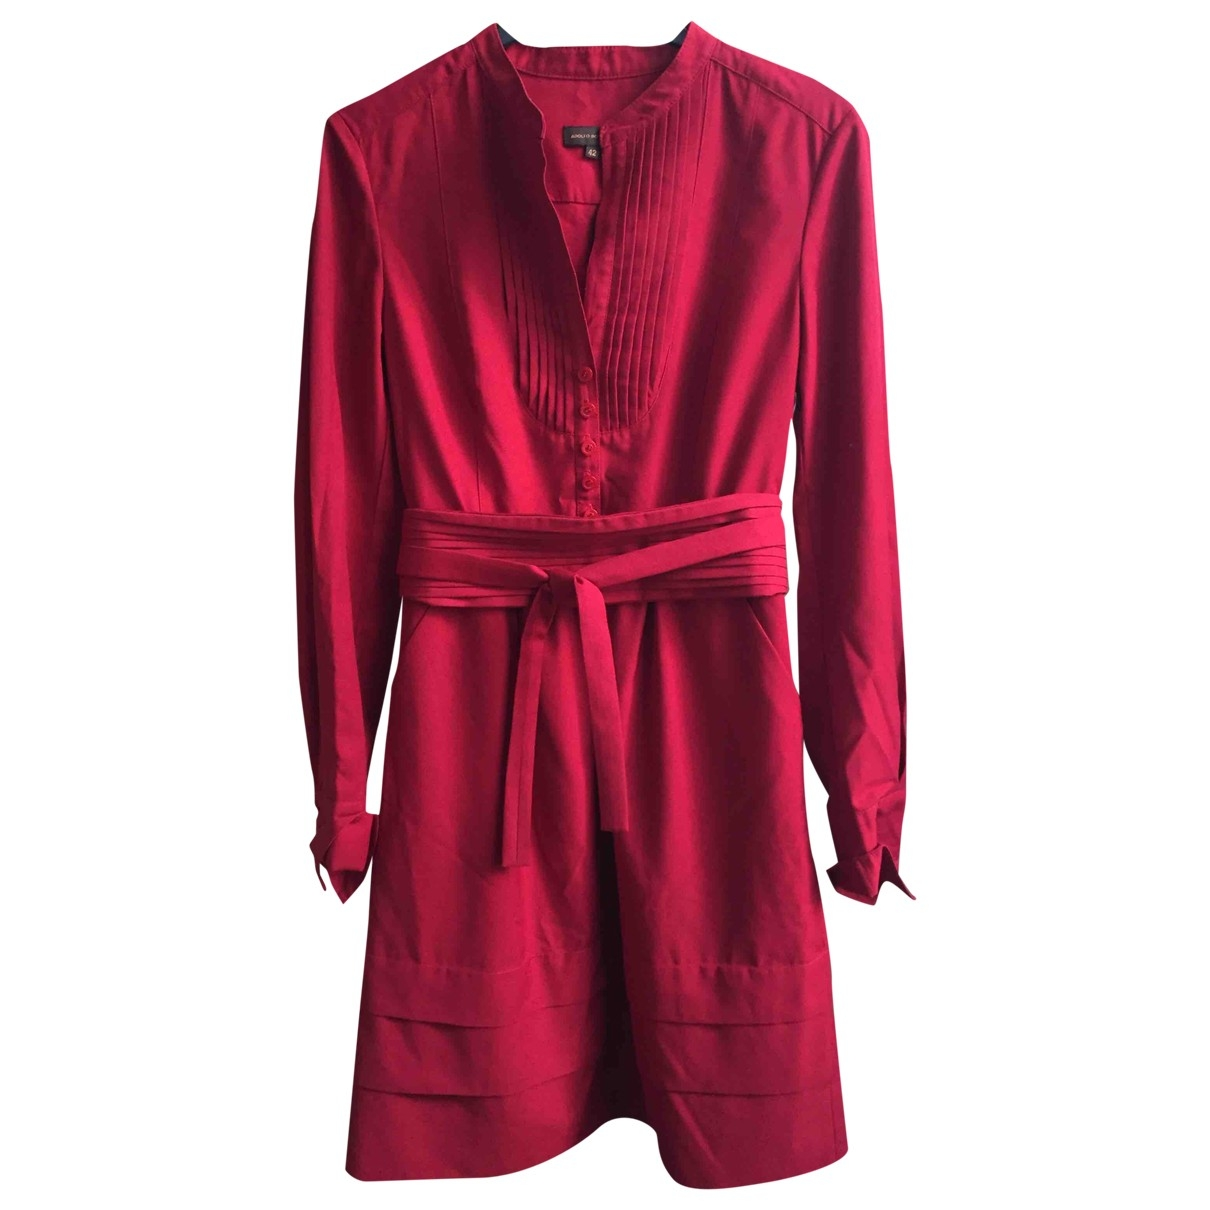 Adolfo Dominguez \N Red dress for Women 42 FR